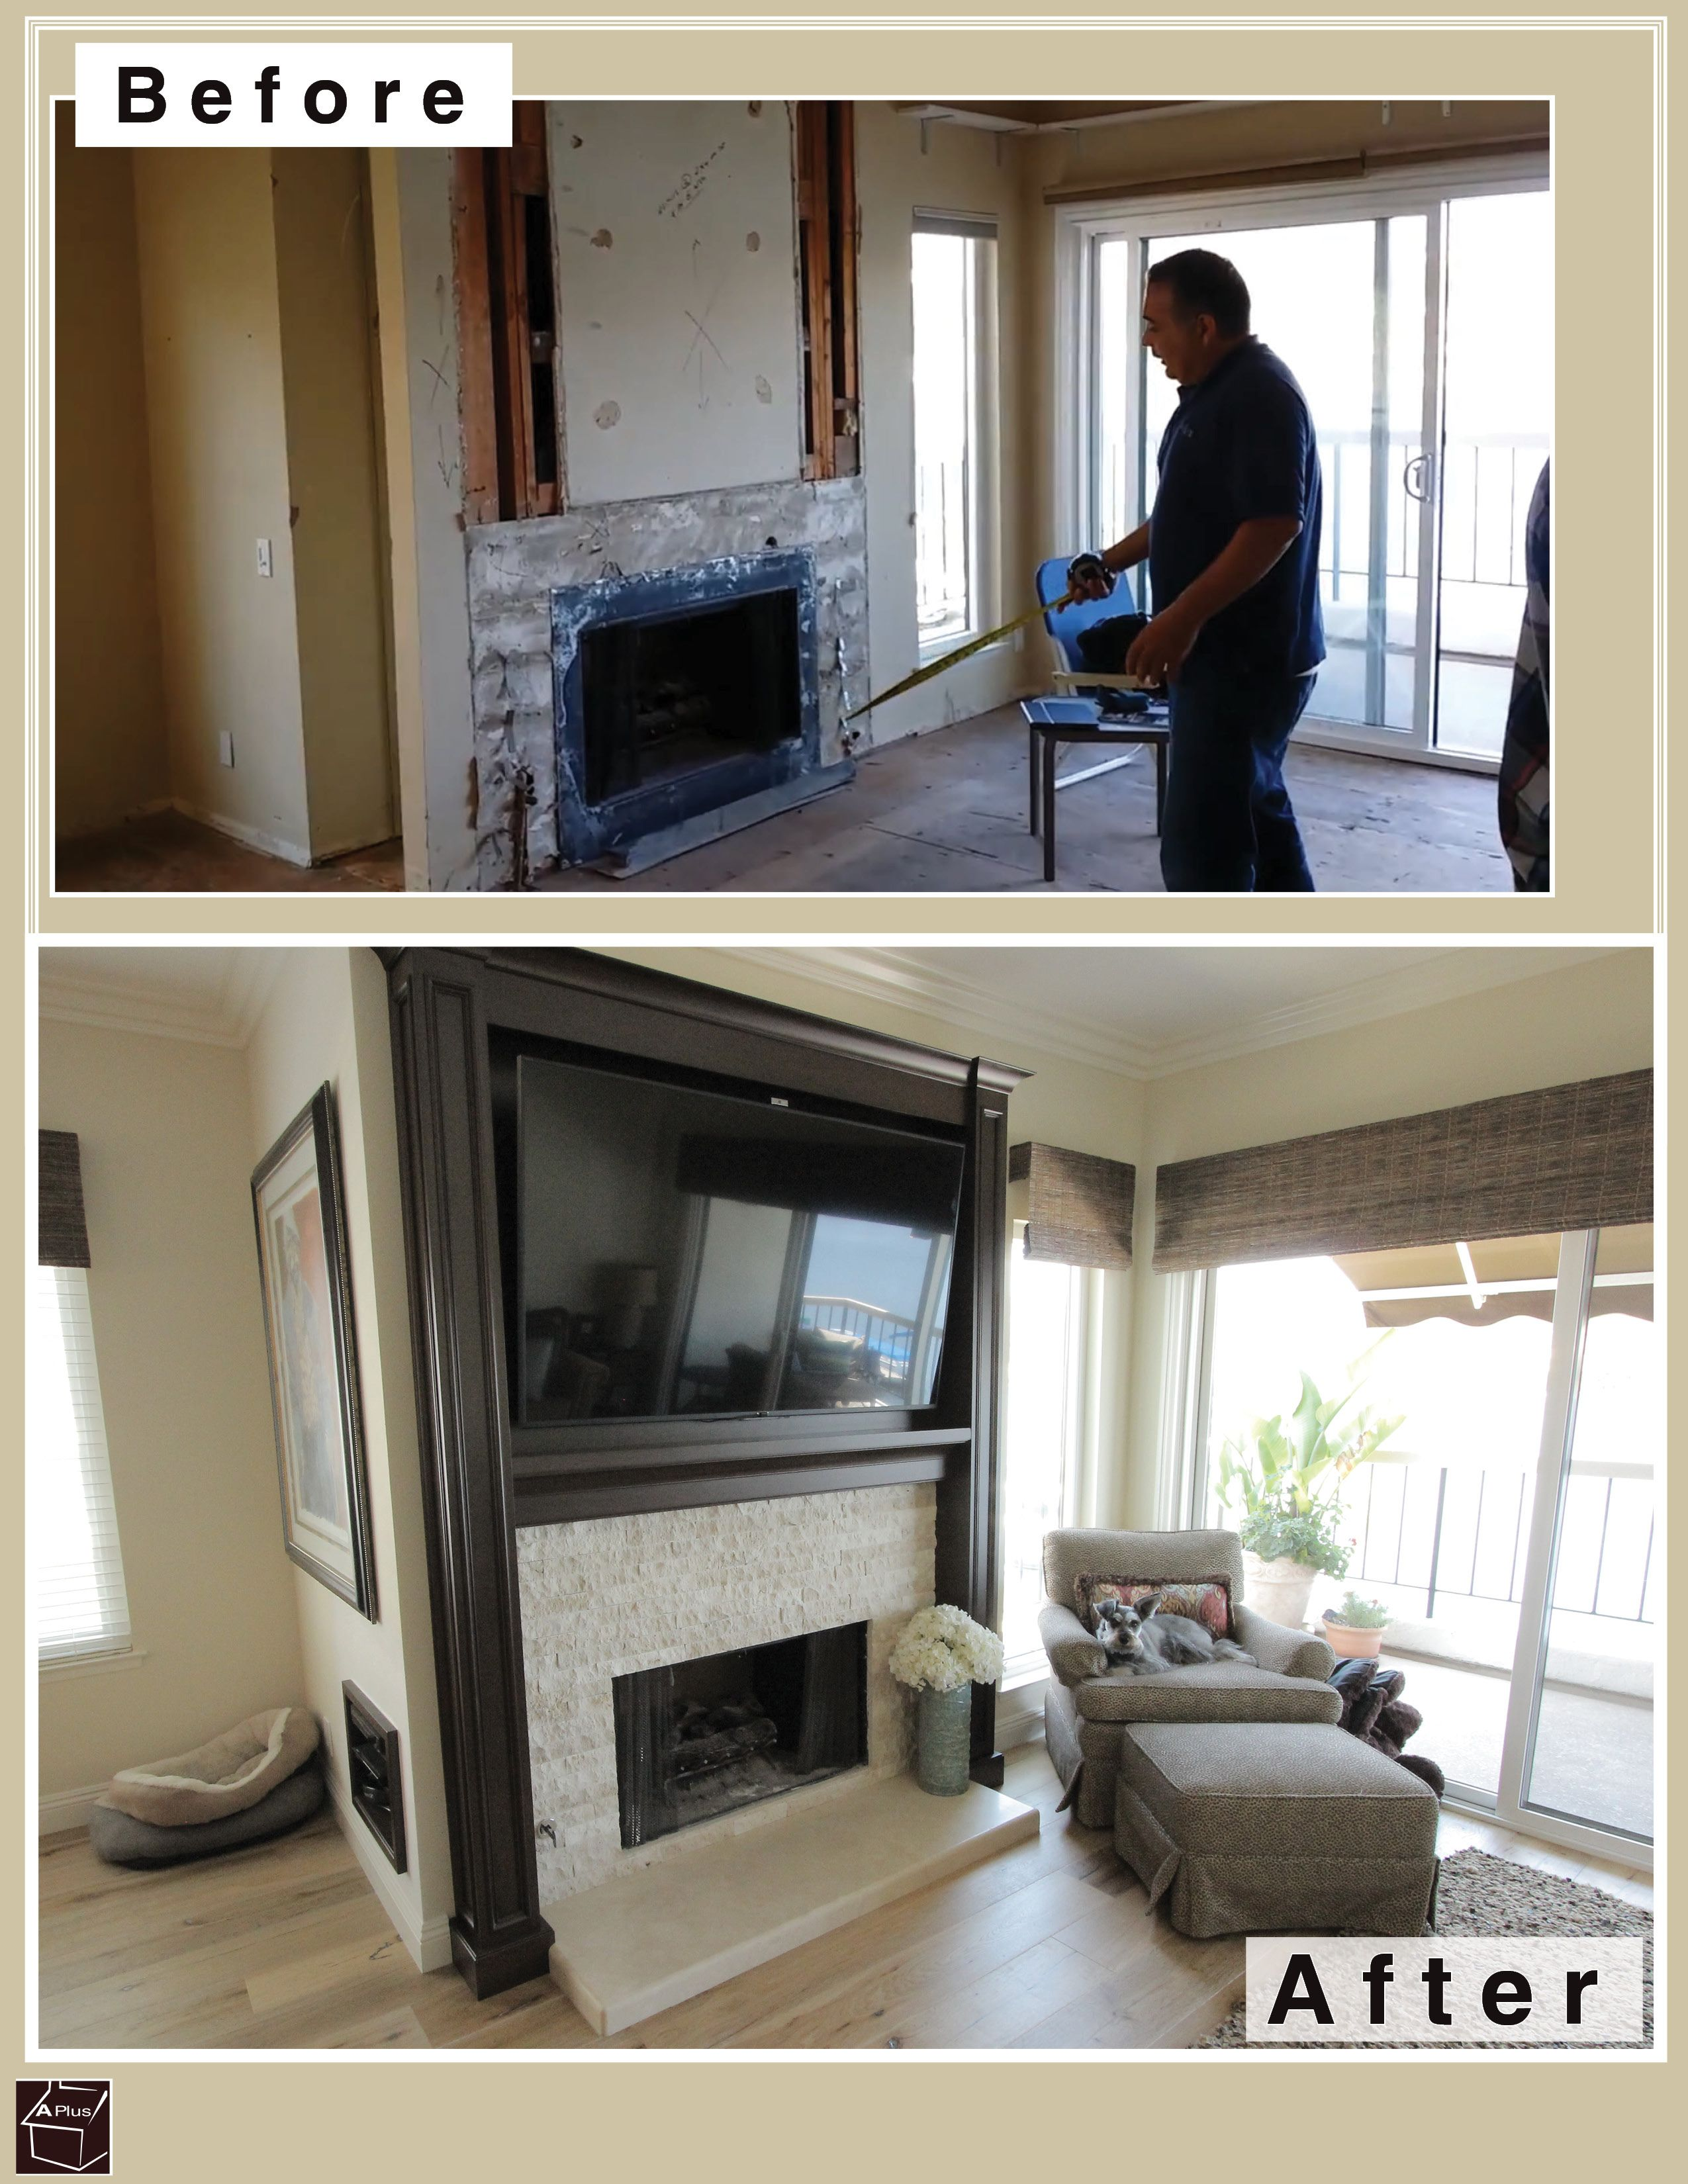 Check Out This Fireplace Entertainment Center Remodel Part Of